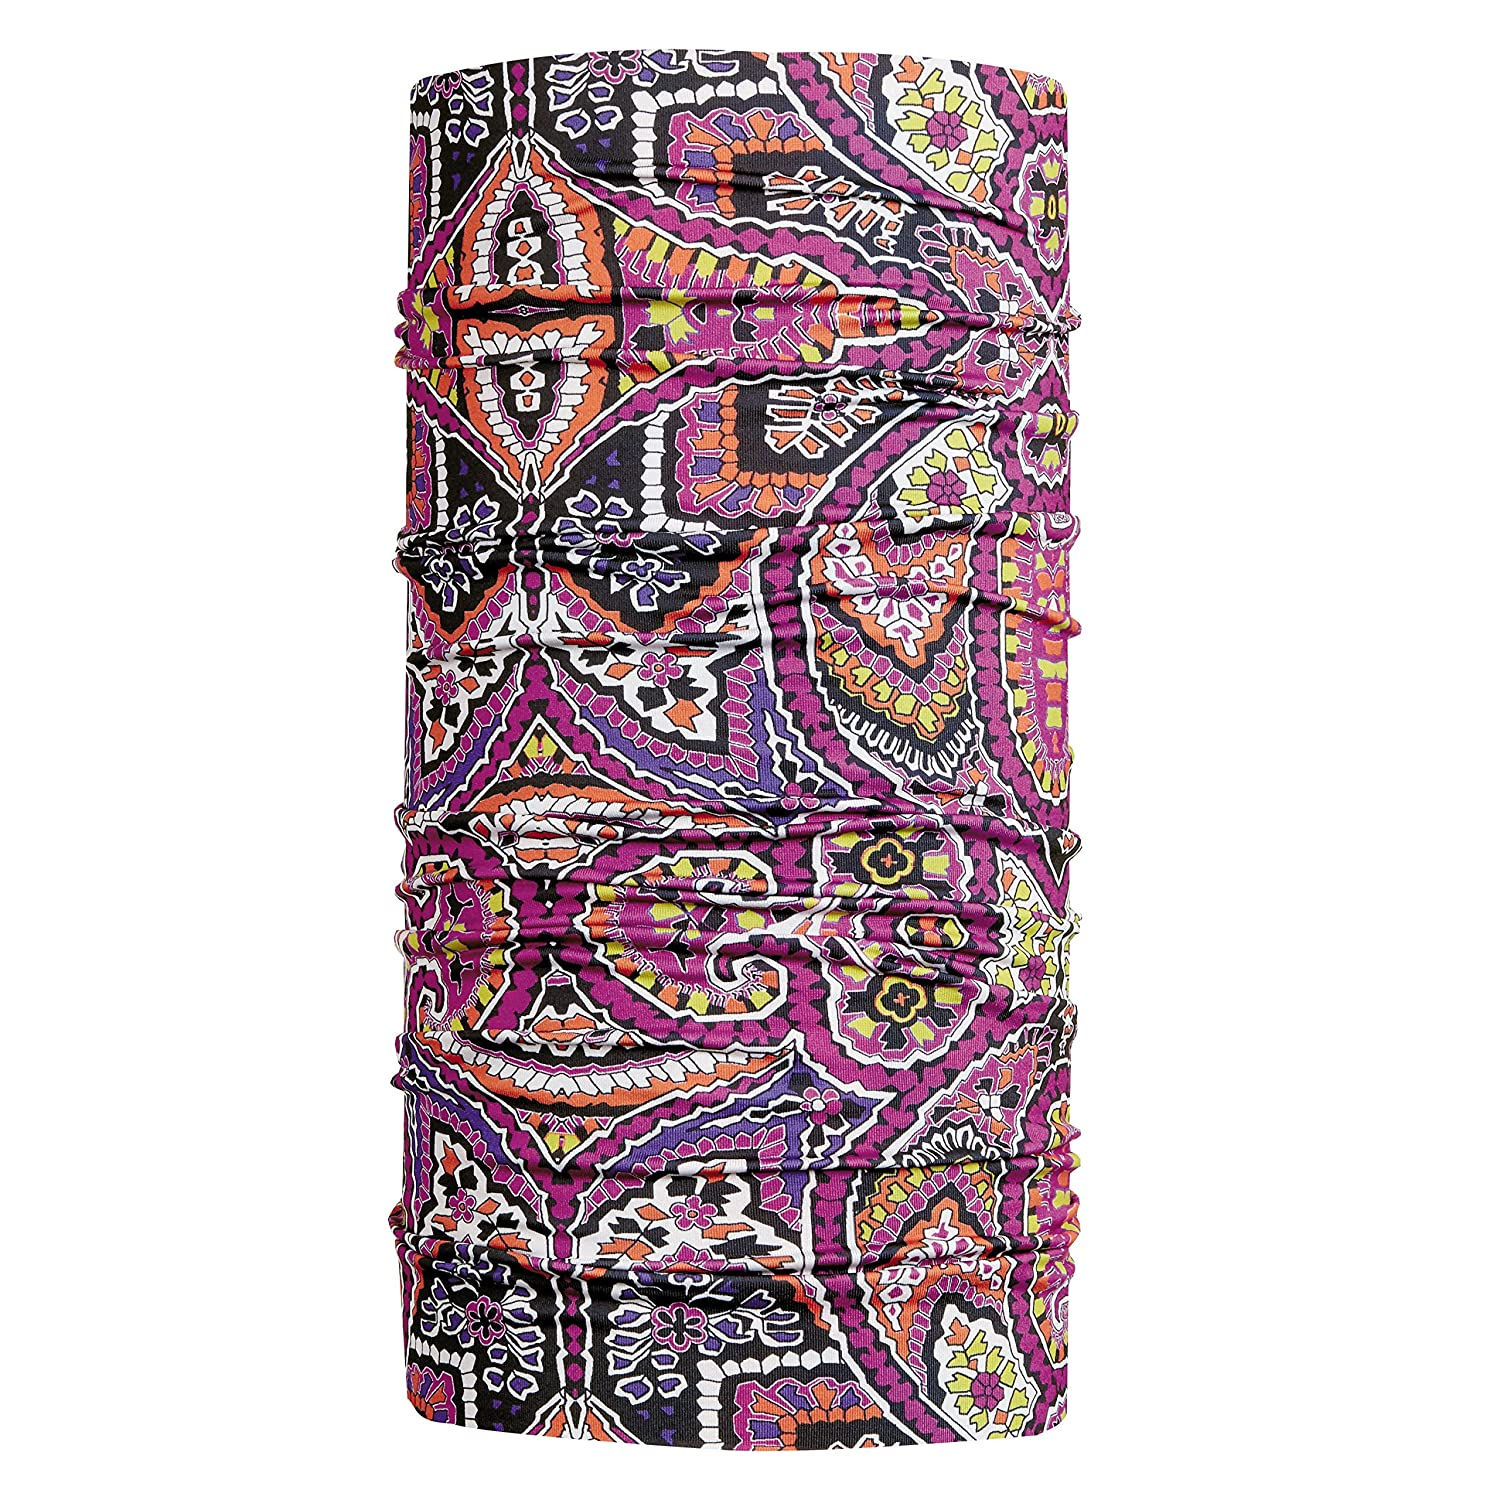 Turtle Fur Comfort Shell UV Totally Tubular Light Double Sided Neck Warmer, Moroccan Less Talkin' Moroccan Less Talkin'